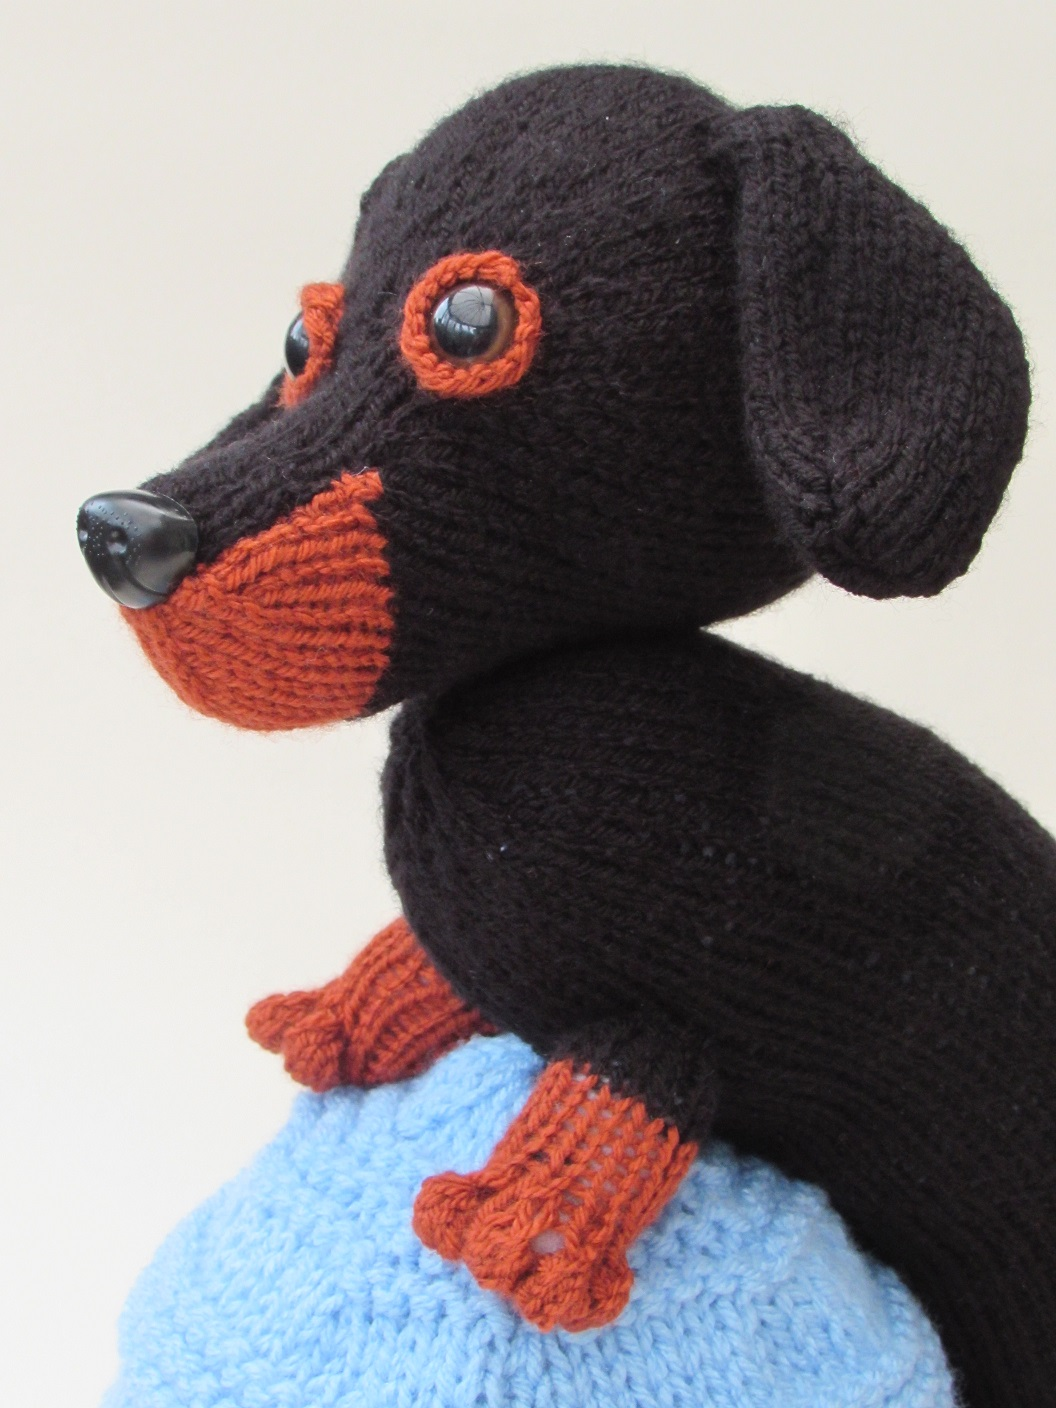 Dachshund knitting pattern